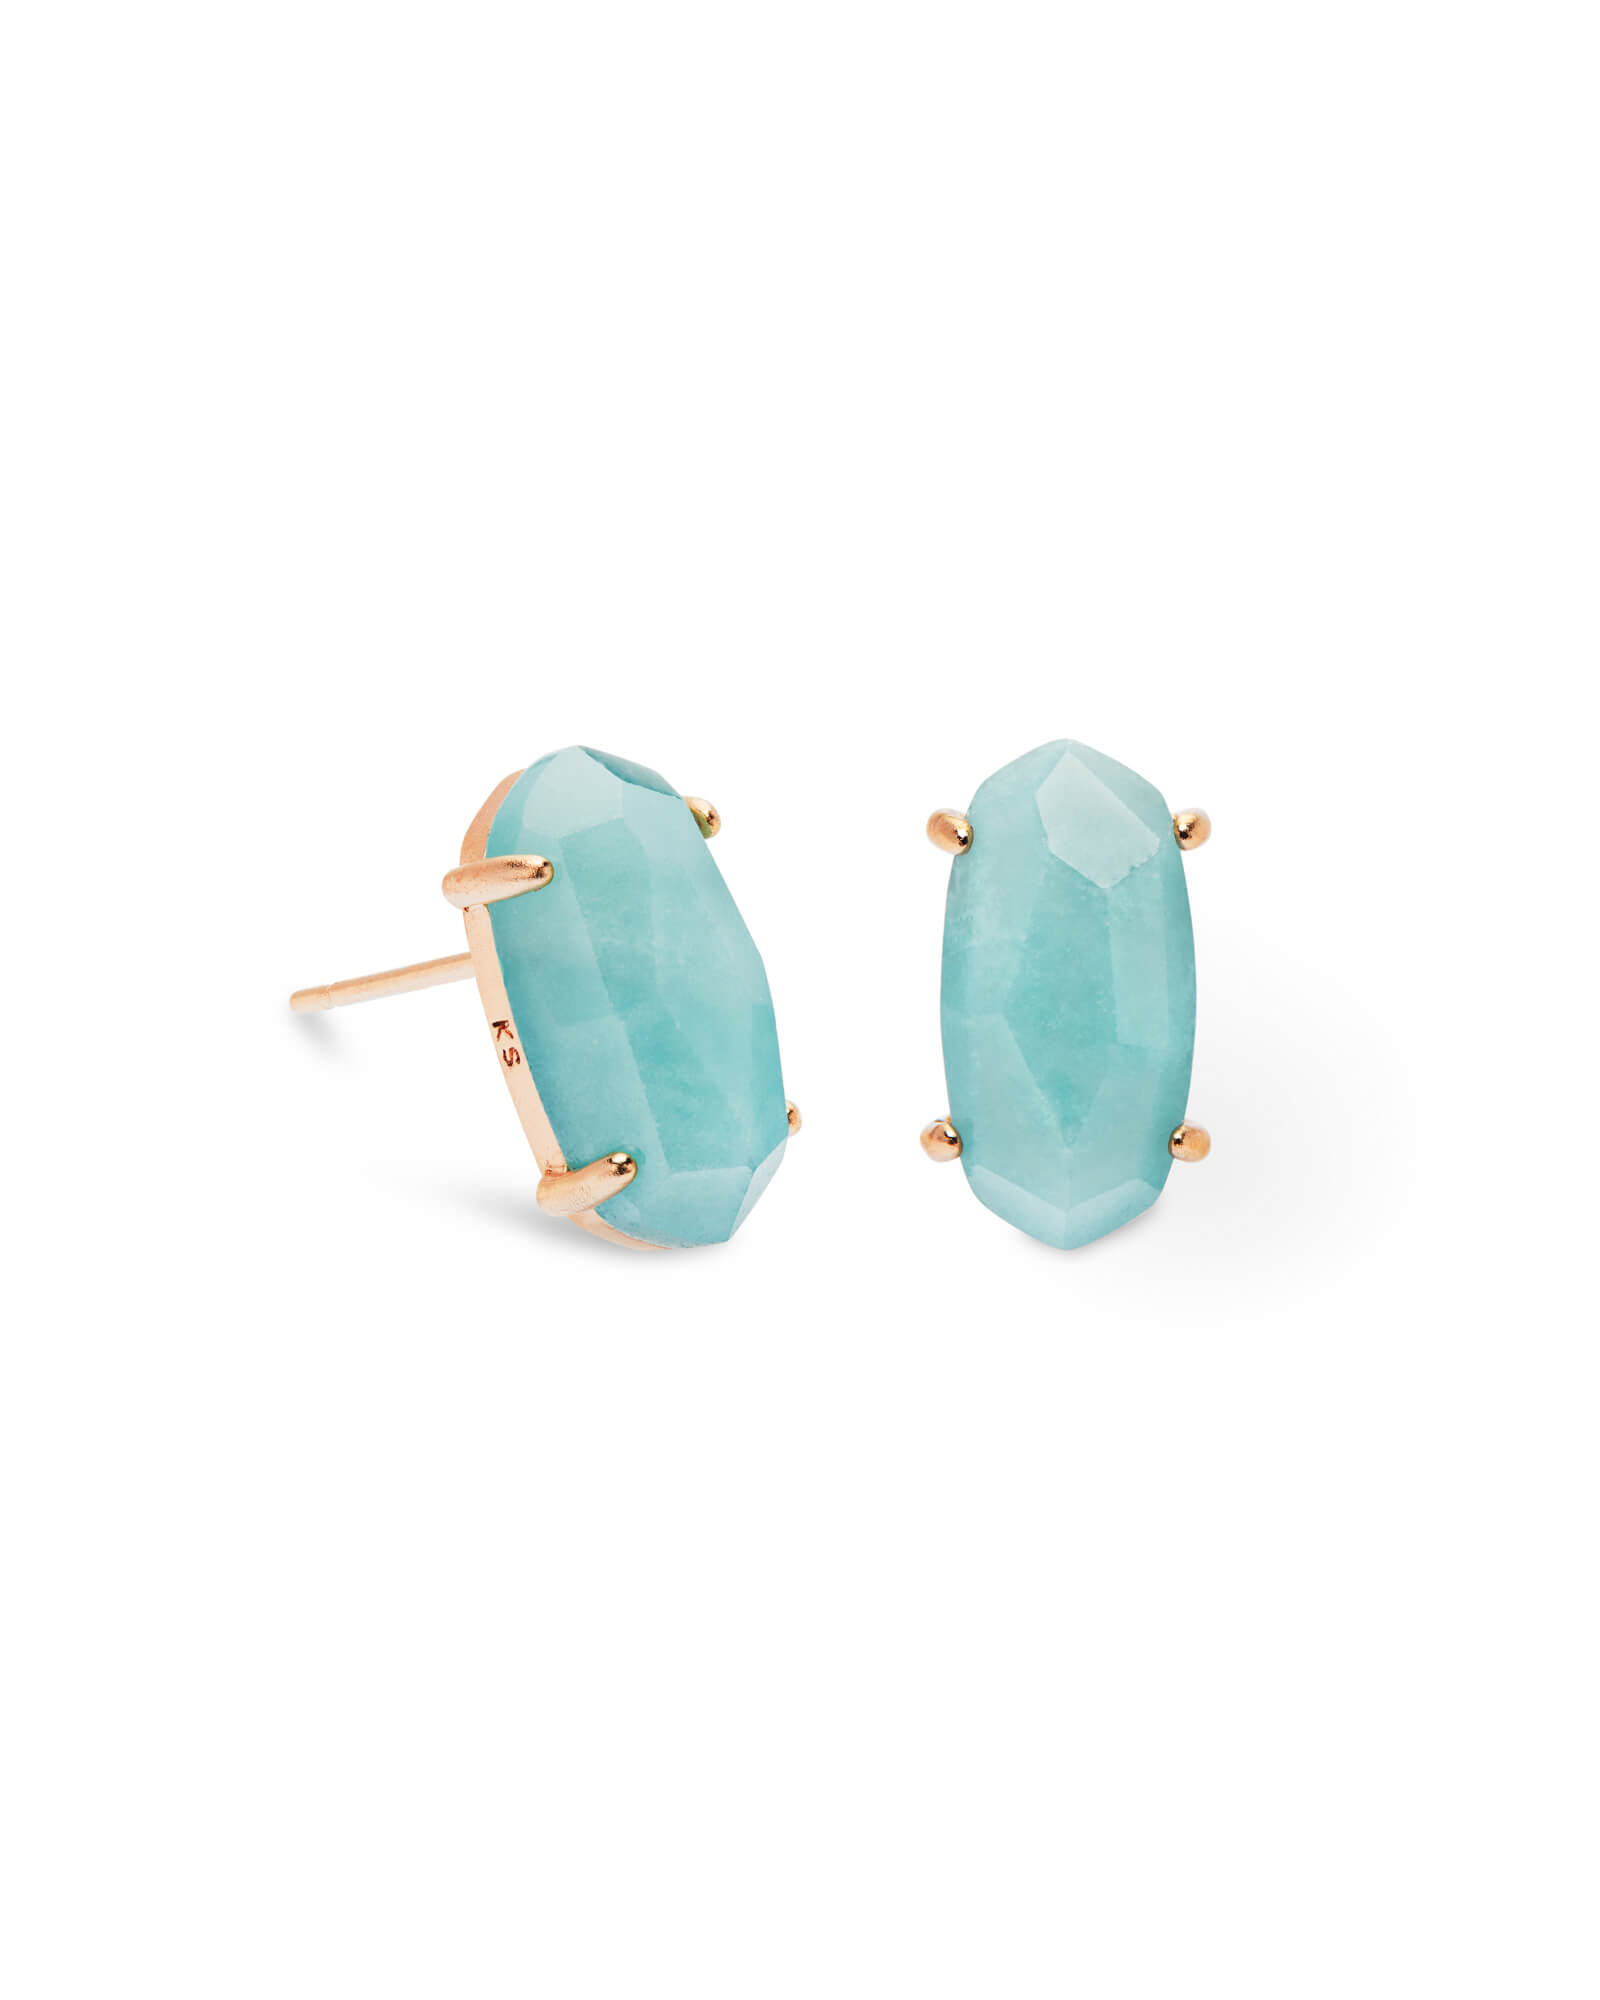 Betty Rose Gold Stud Earrings in Teal Quartzite